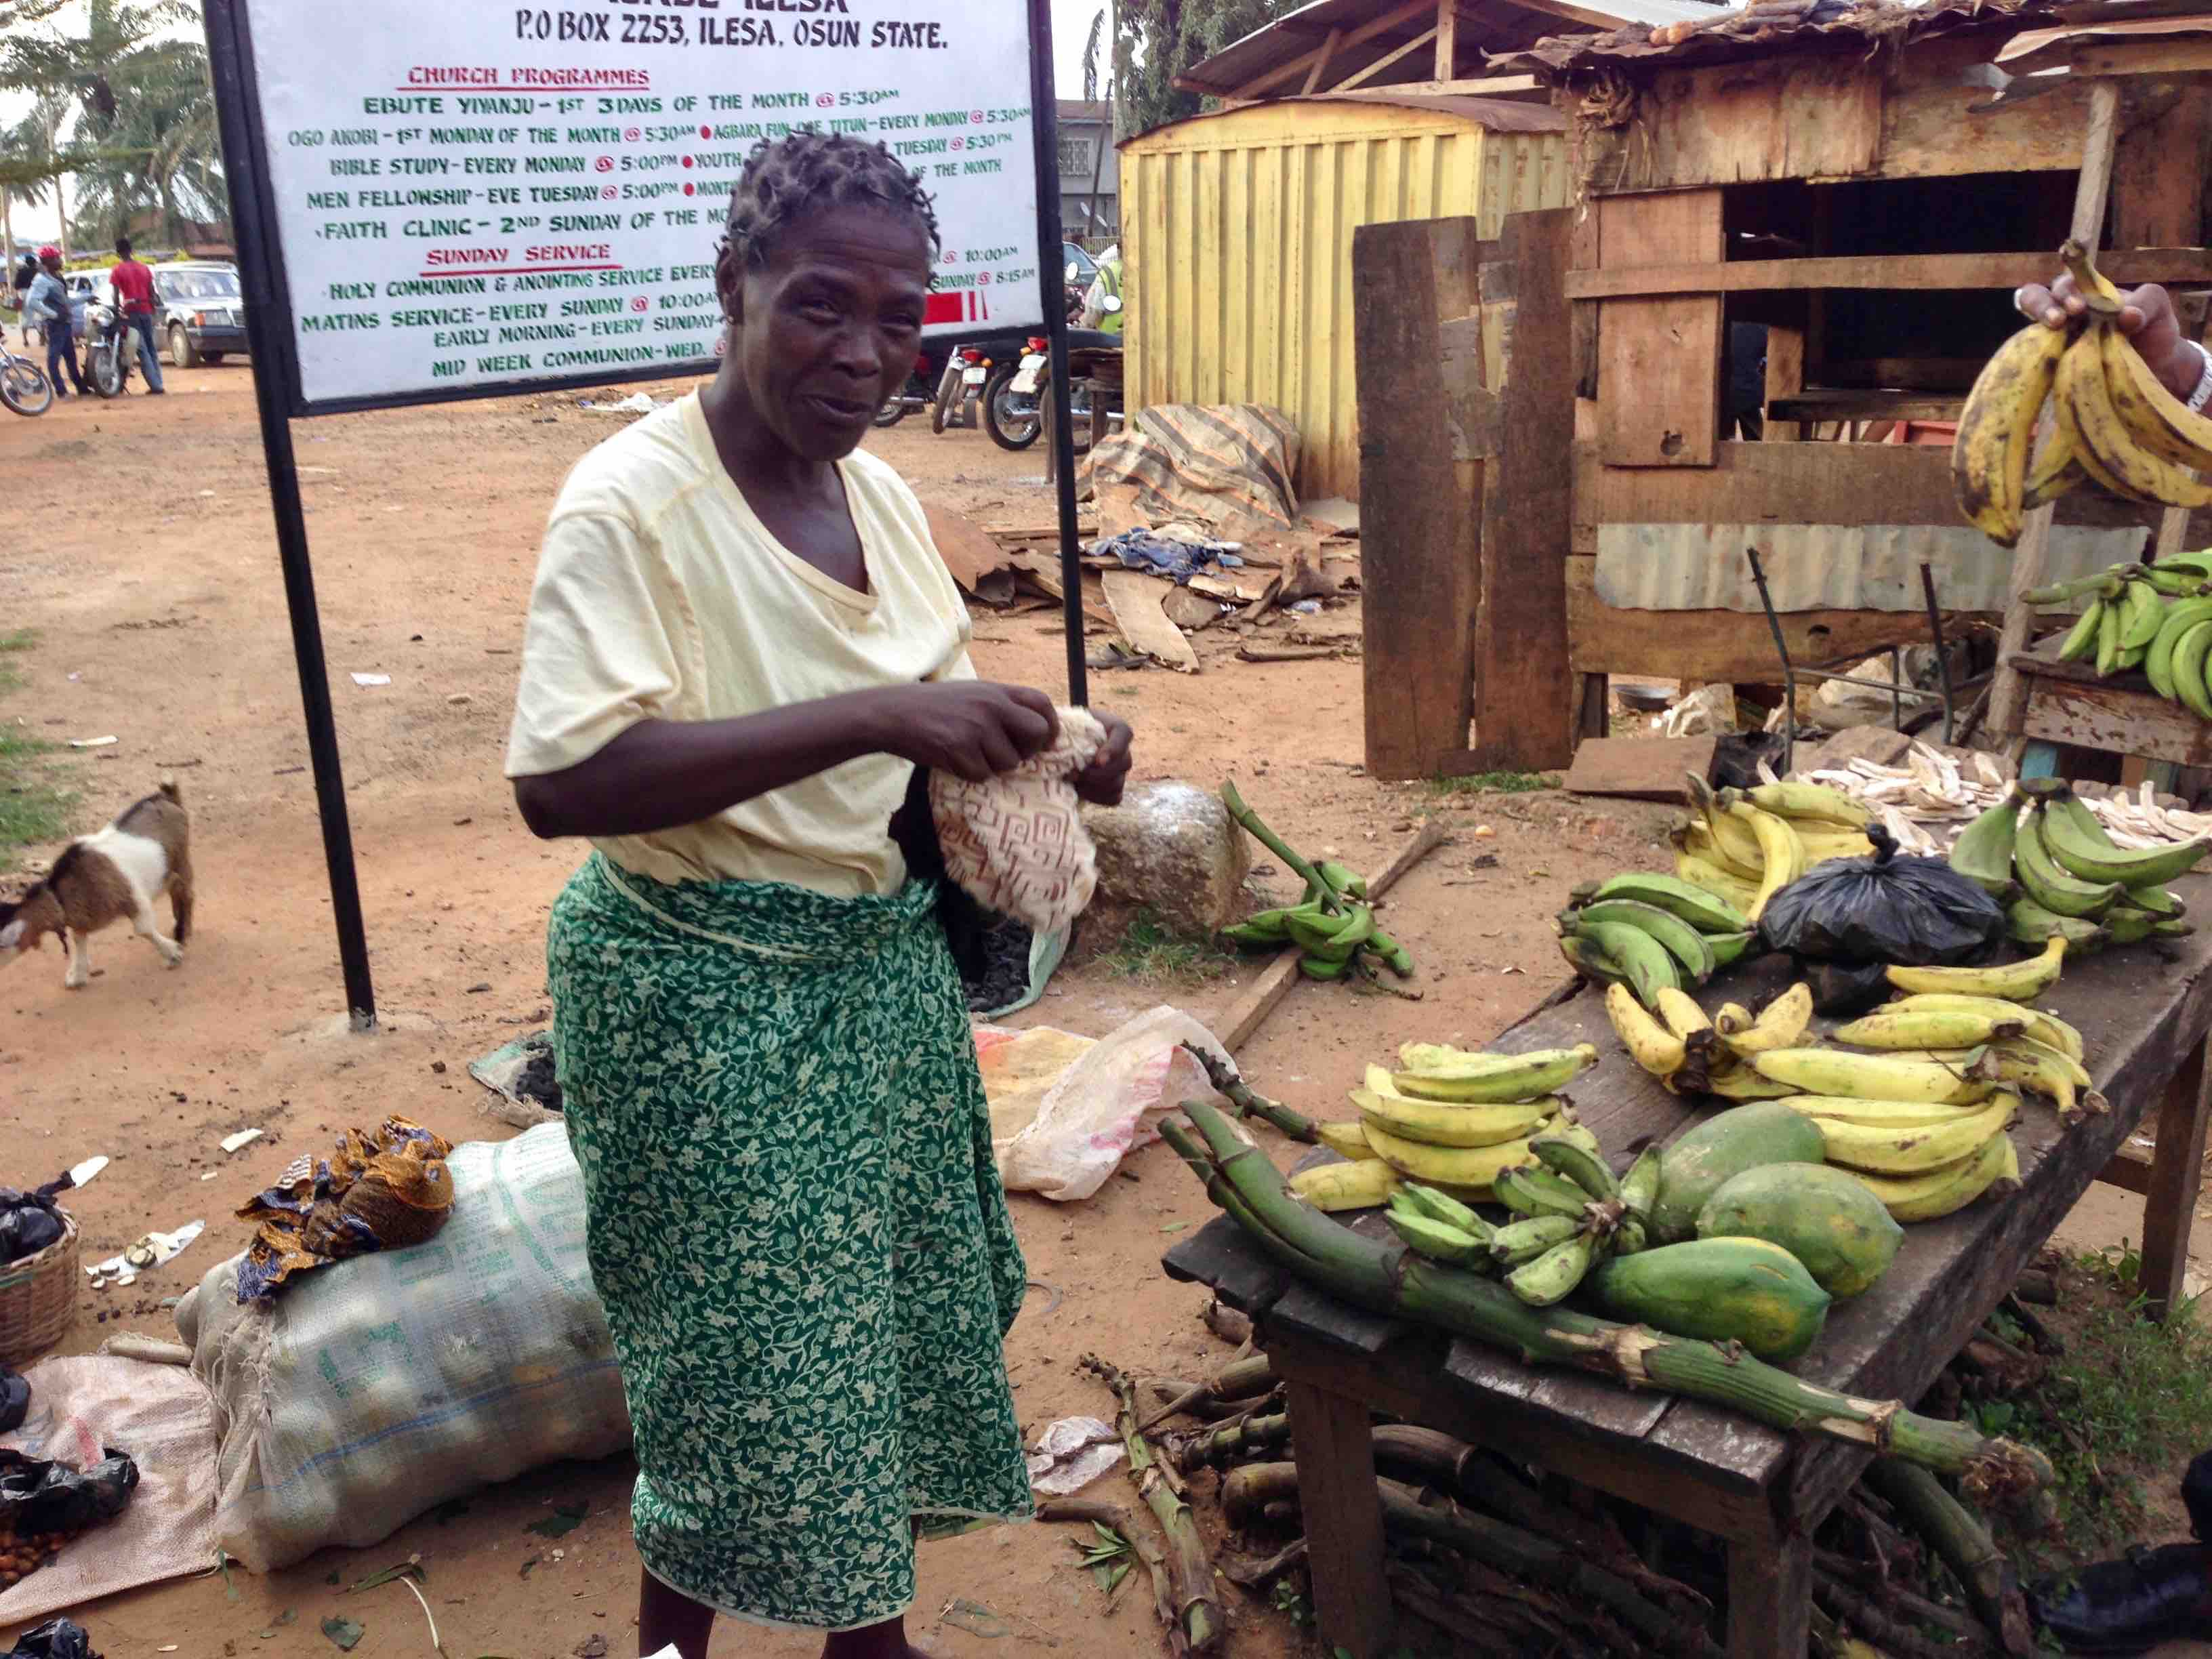 Ijesha woman selling plantains and pawpaw, Ilesa - Oshogbo Road, Oke Omiru, Ilesa, Osun State, Nigeria. #JujuFilms